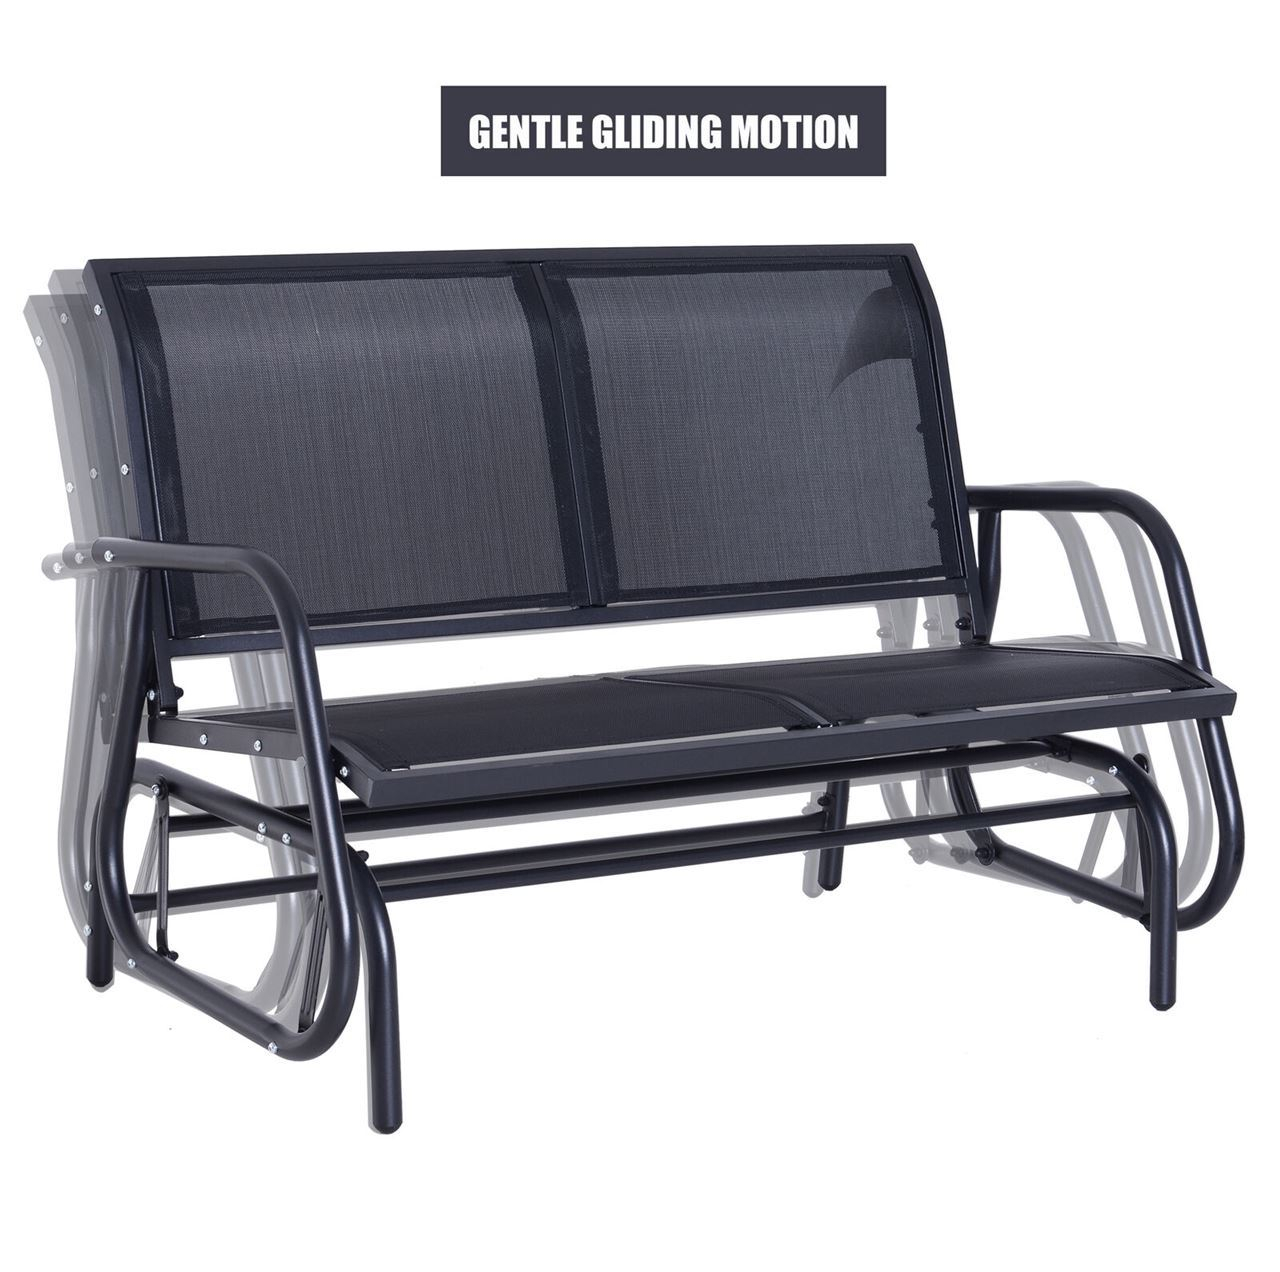 Outdoor Patio Swing Glider Bench Chair – Dark Gray Pertaining To Outdoor Patio Swing Glider Bench Chairs (View 12 of 25)